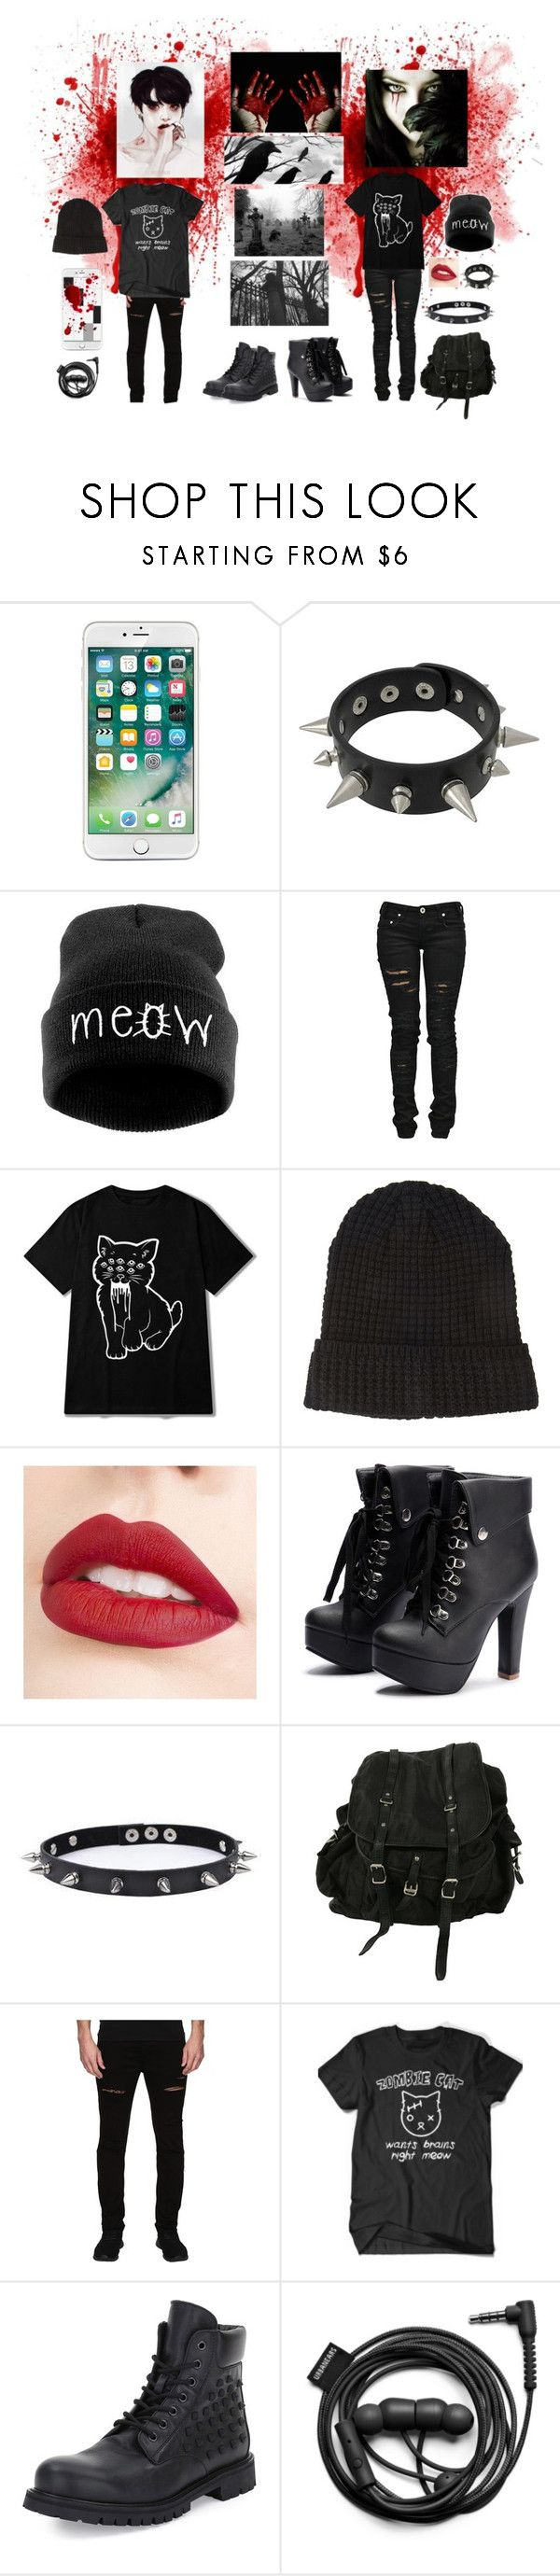 """""""Vampire Style With Jungkook"""" by yoonmin2725 ❤ liked on Polyvore featuring Morgan, WithChic, Denim of Virtue, 21 Men, Jouer, Trend Cool, AllSaints, Rustic Dime, Valentino and Forever 21"""